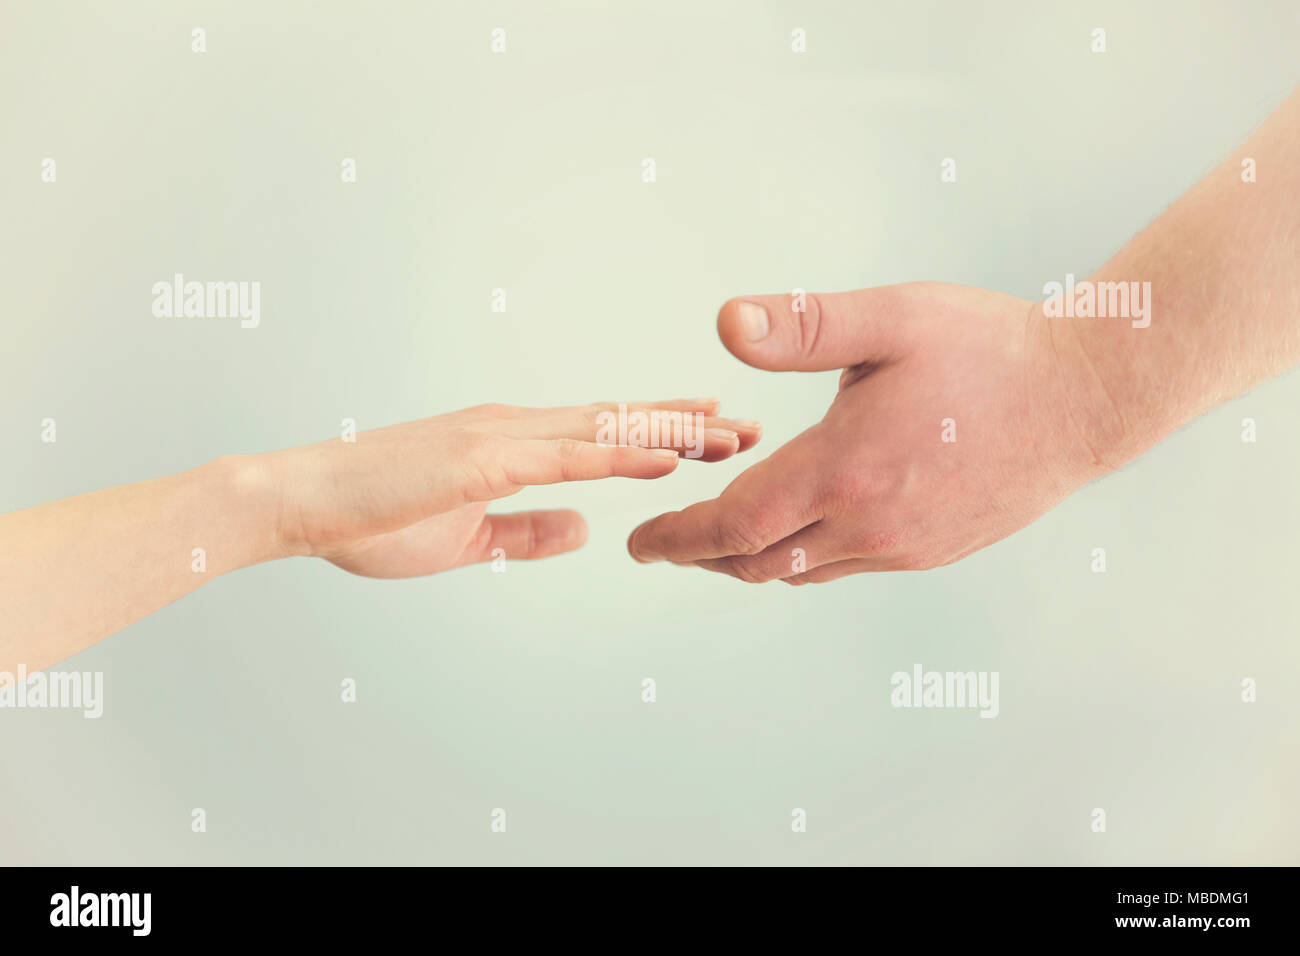 Support concept. Two hands reaching toward each other. Empathy, compassion, help, kindness - Stock Image